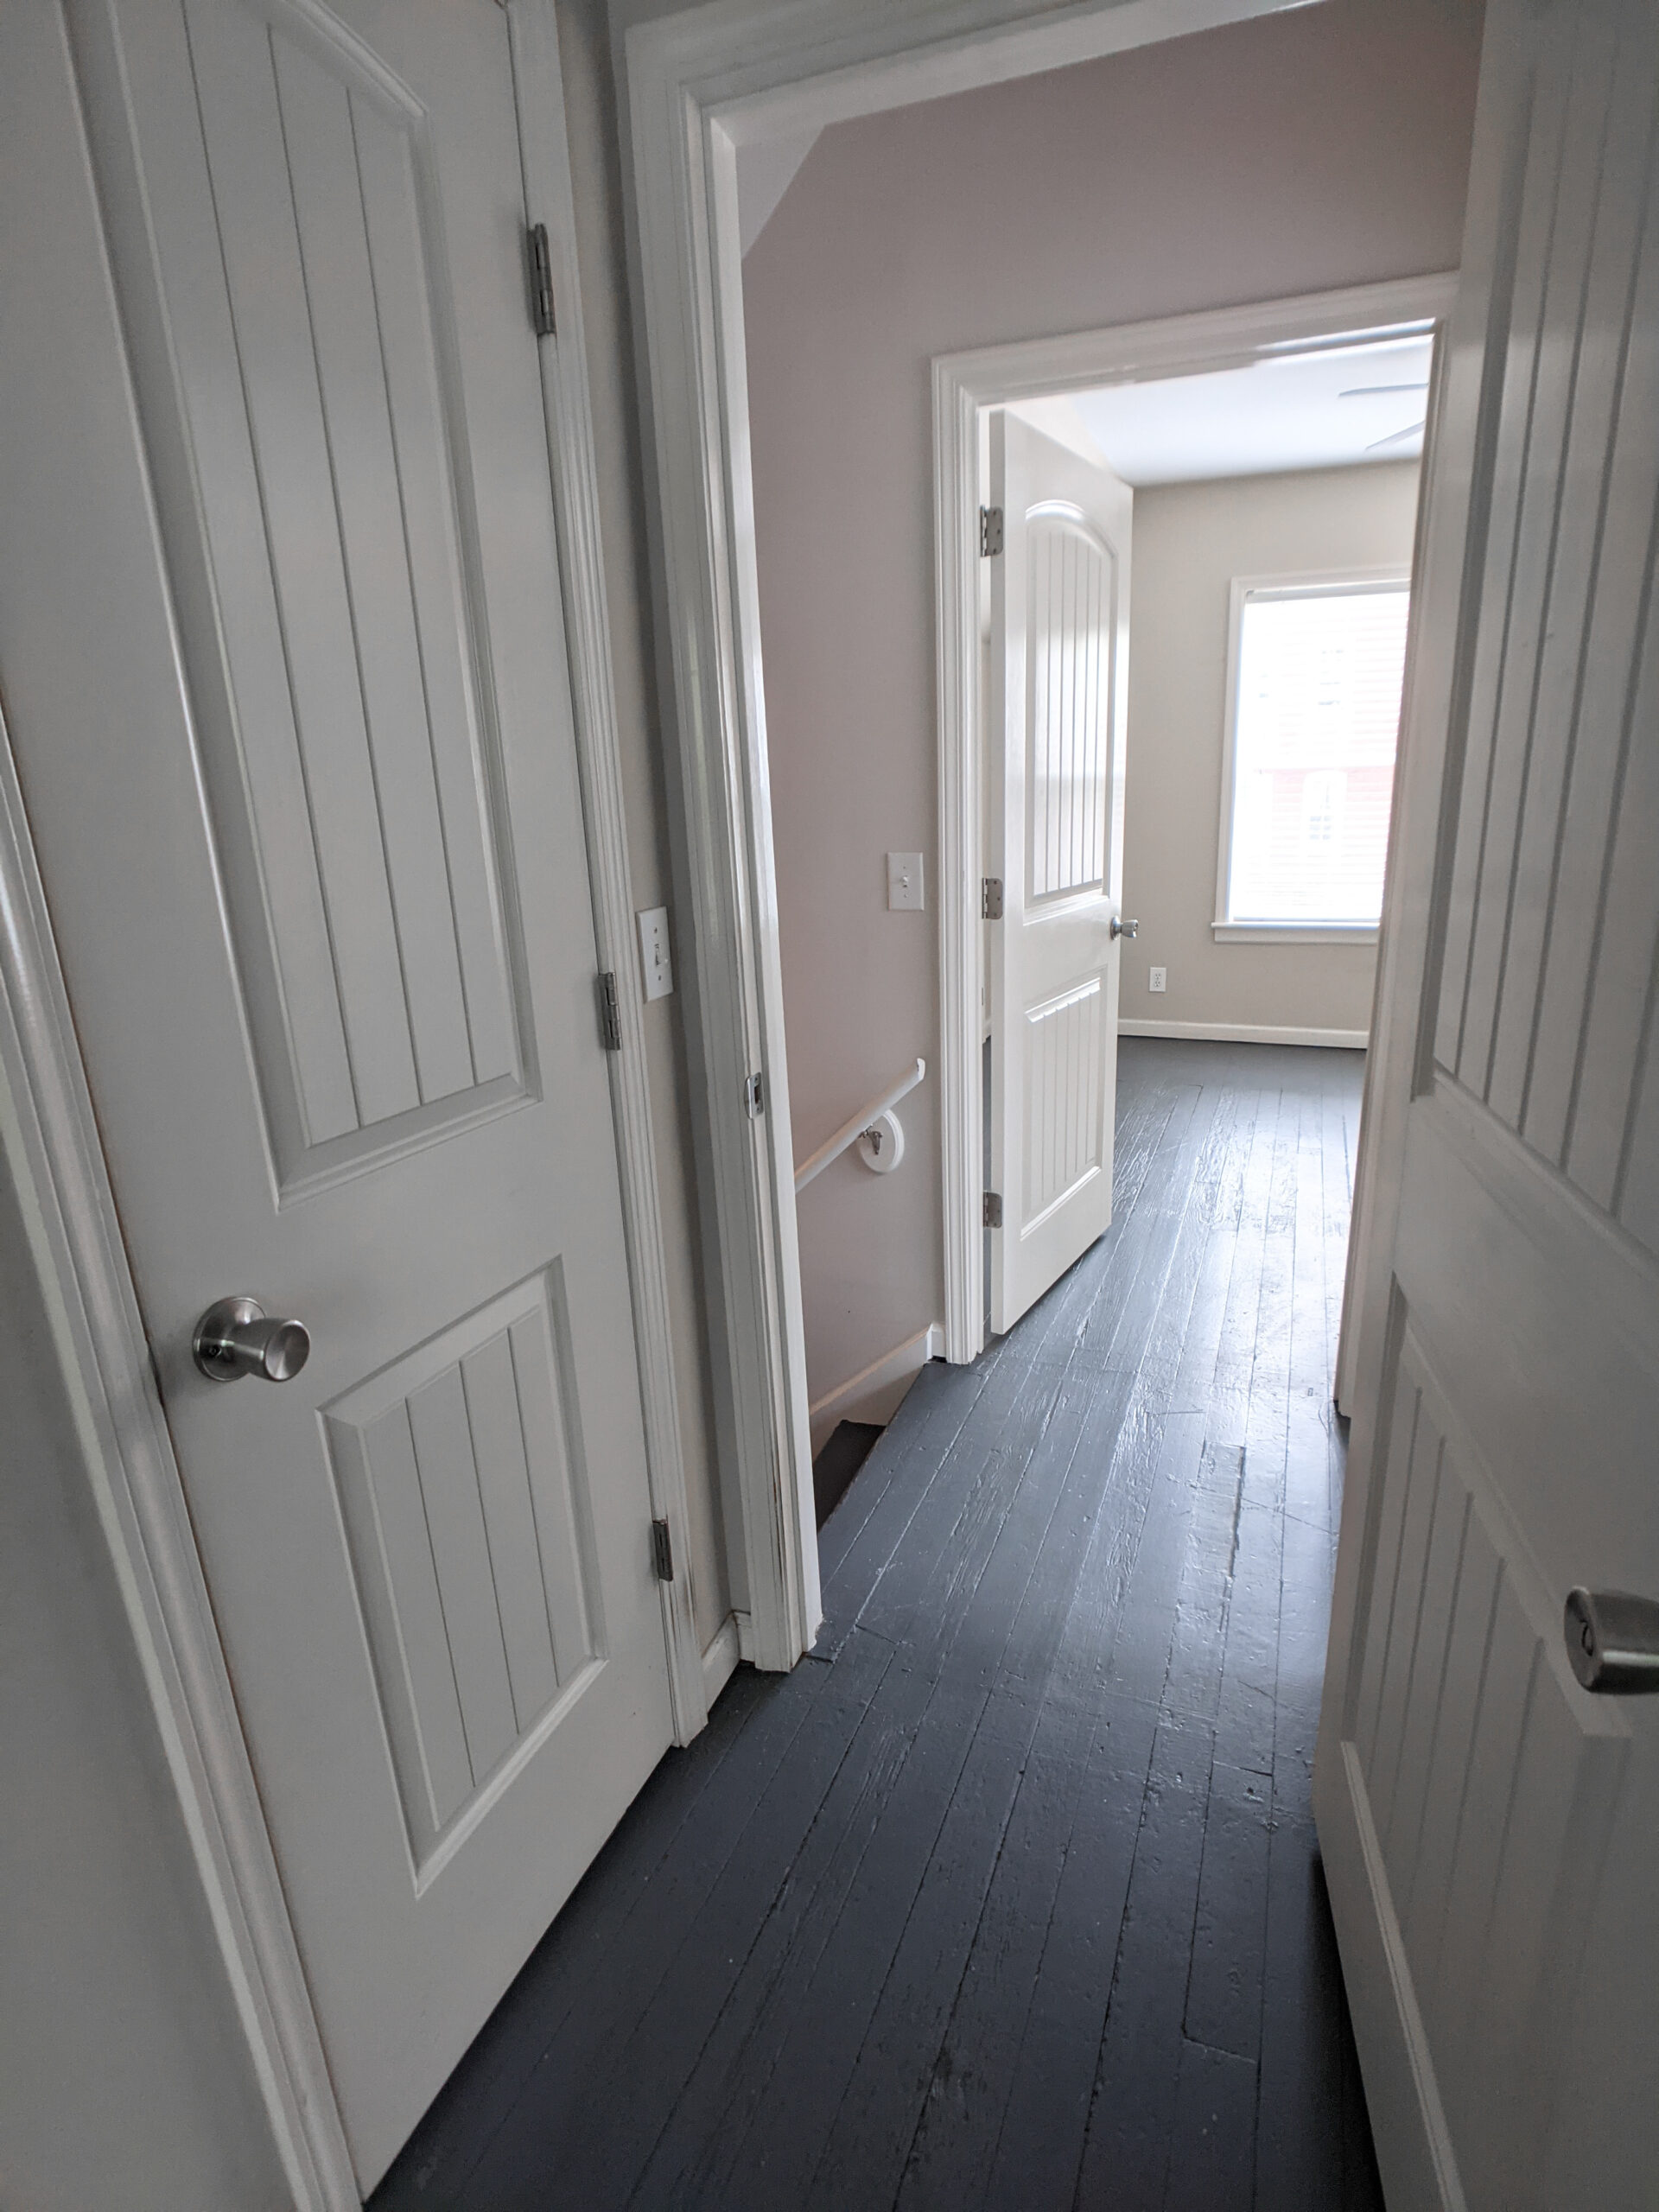 A landing looking into a second bedroom.